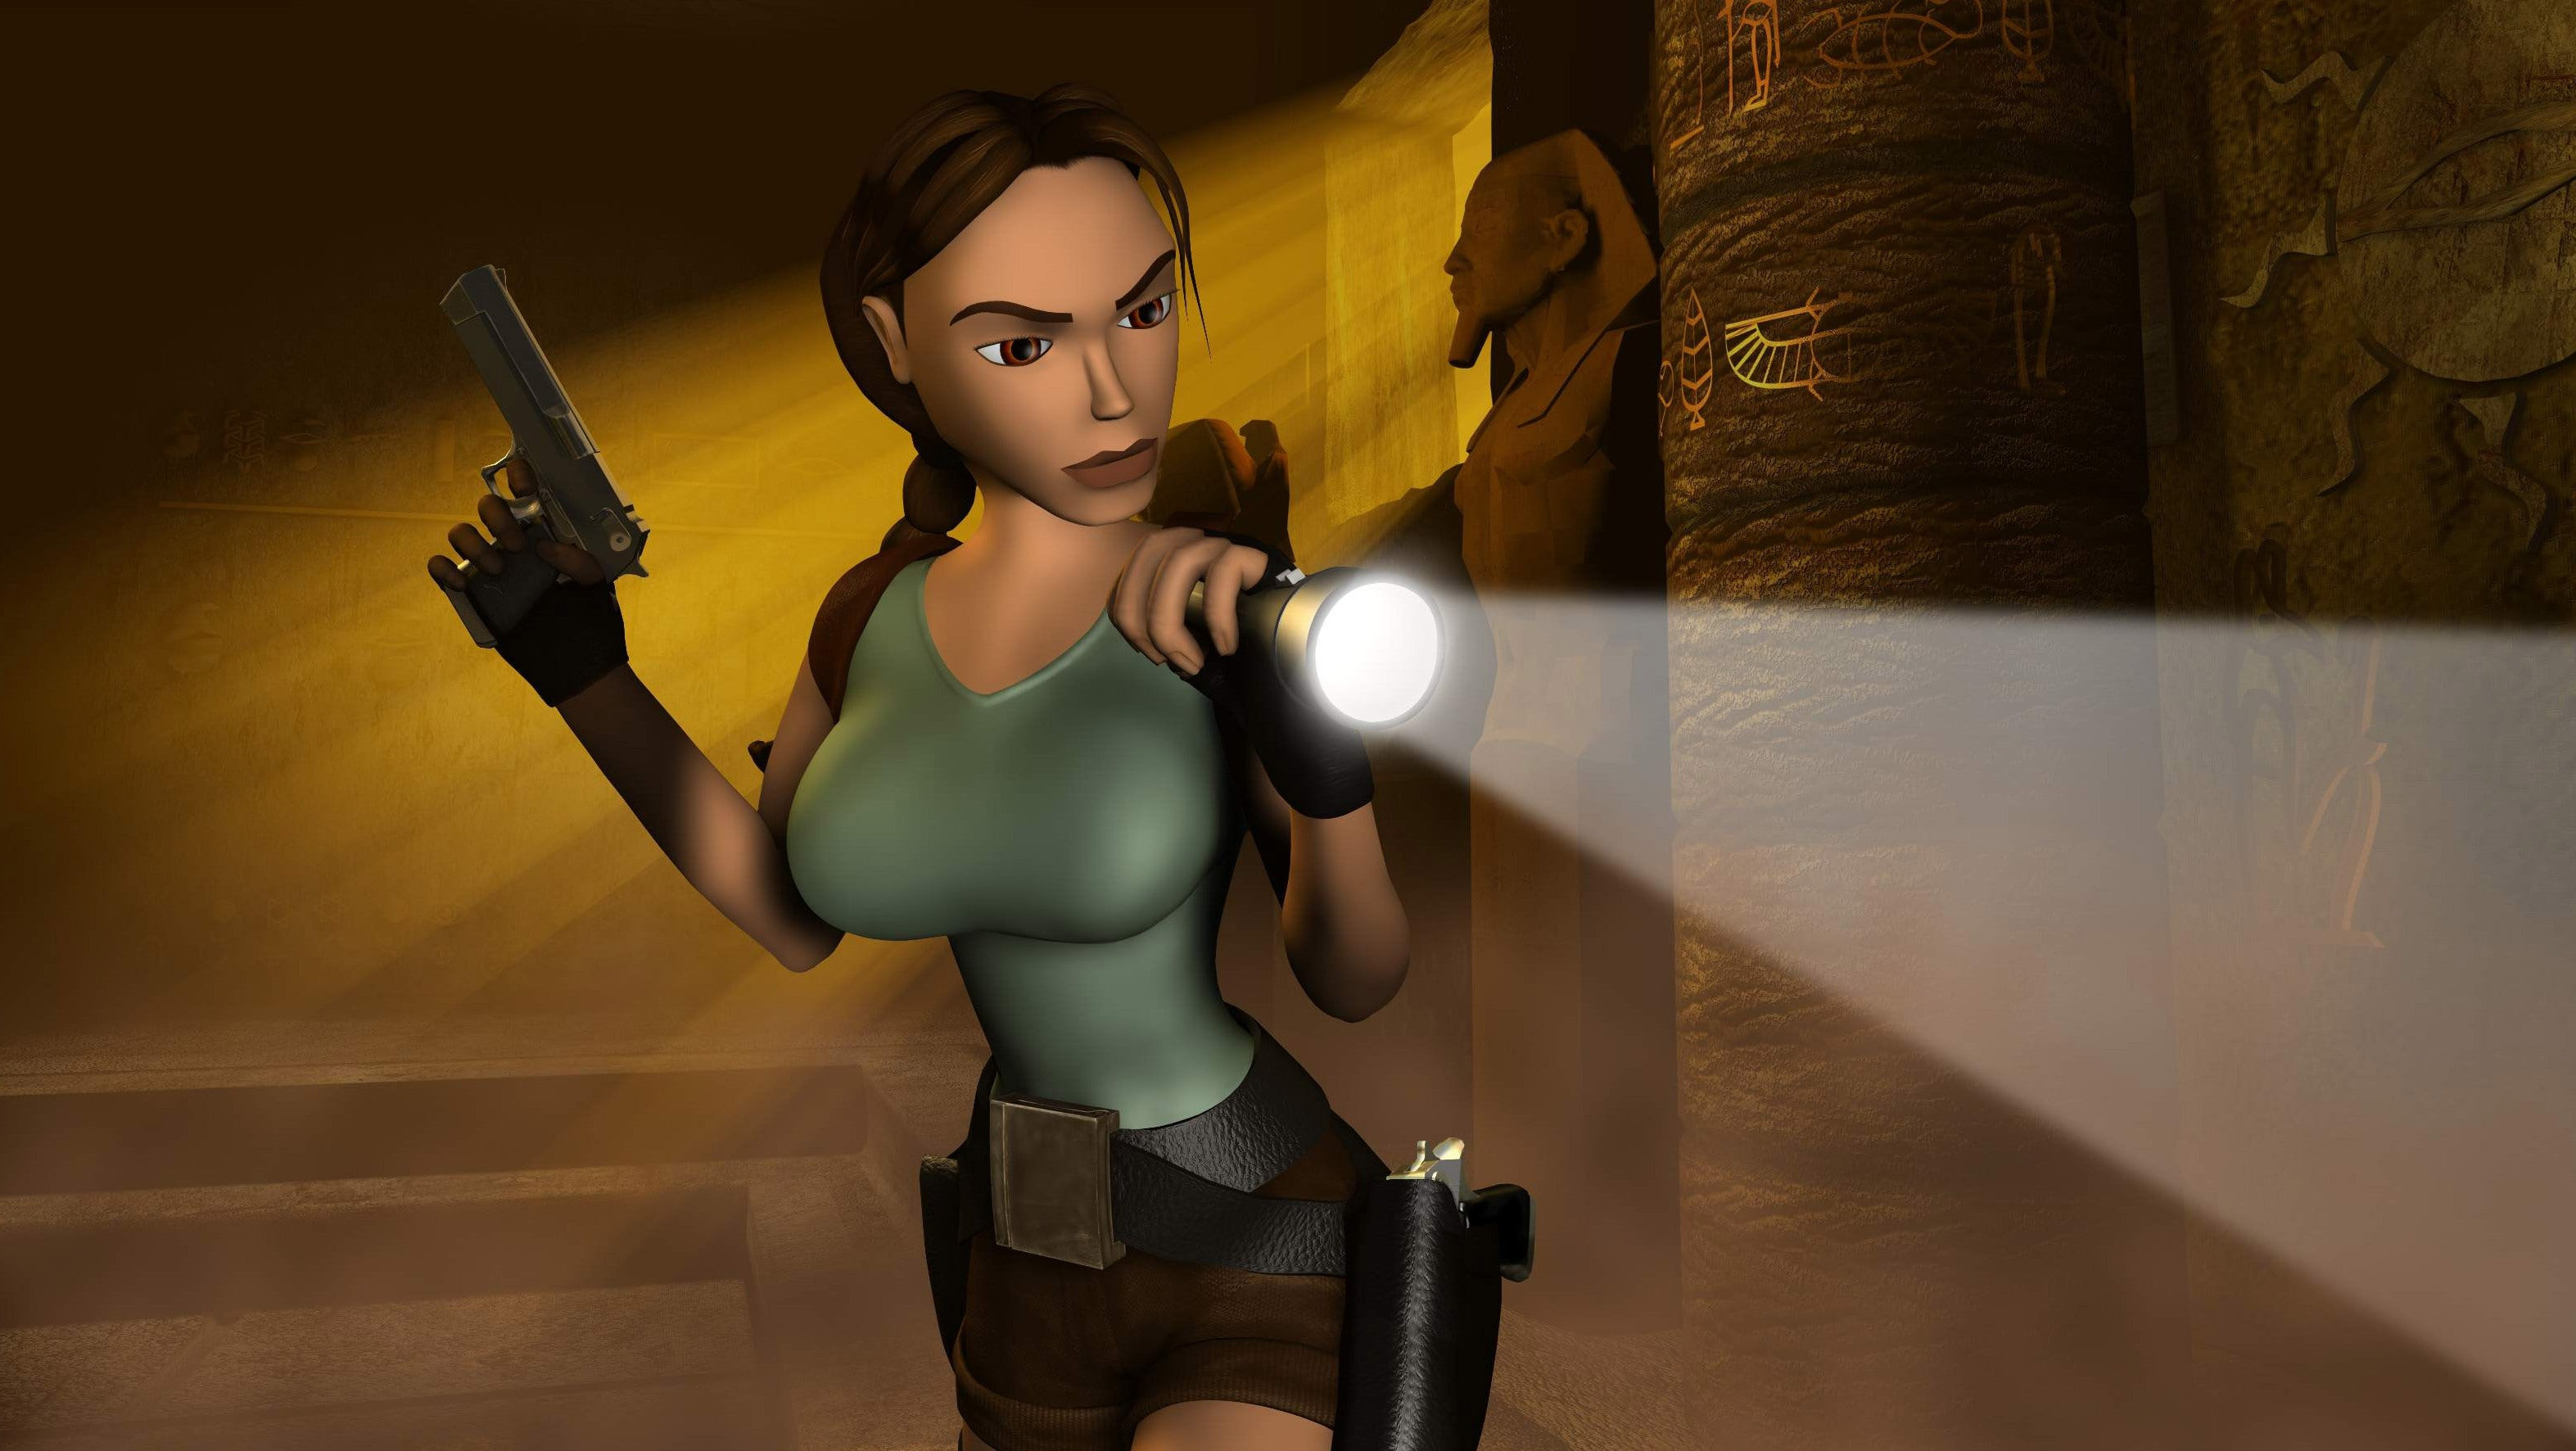 lara croft contest date from 1999 inspires hilarious fan